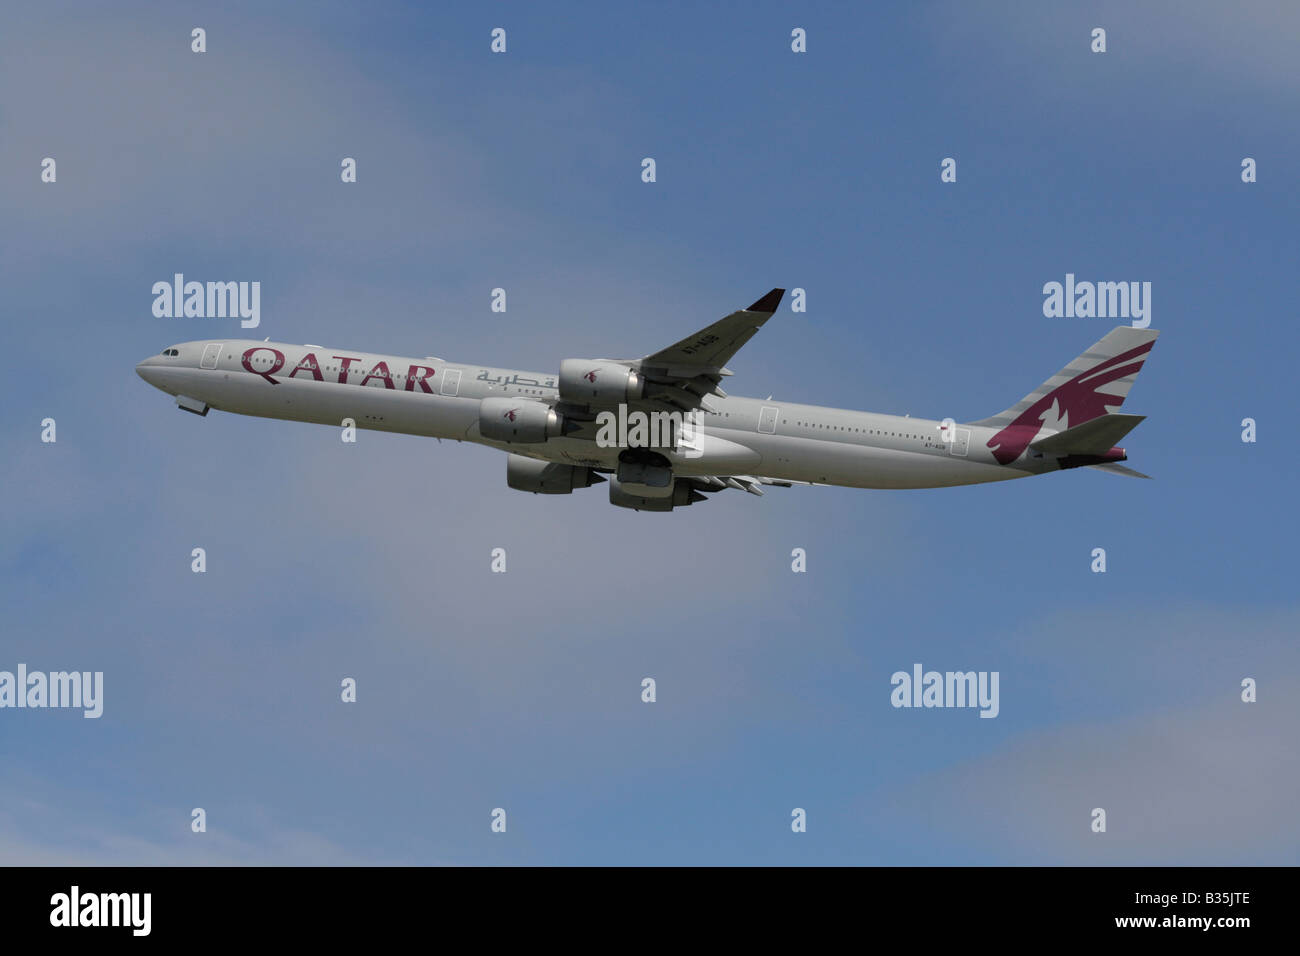 Qatar Airways Airbus A340-600 climbing on departure from Heathrow Airport - Stock Image